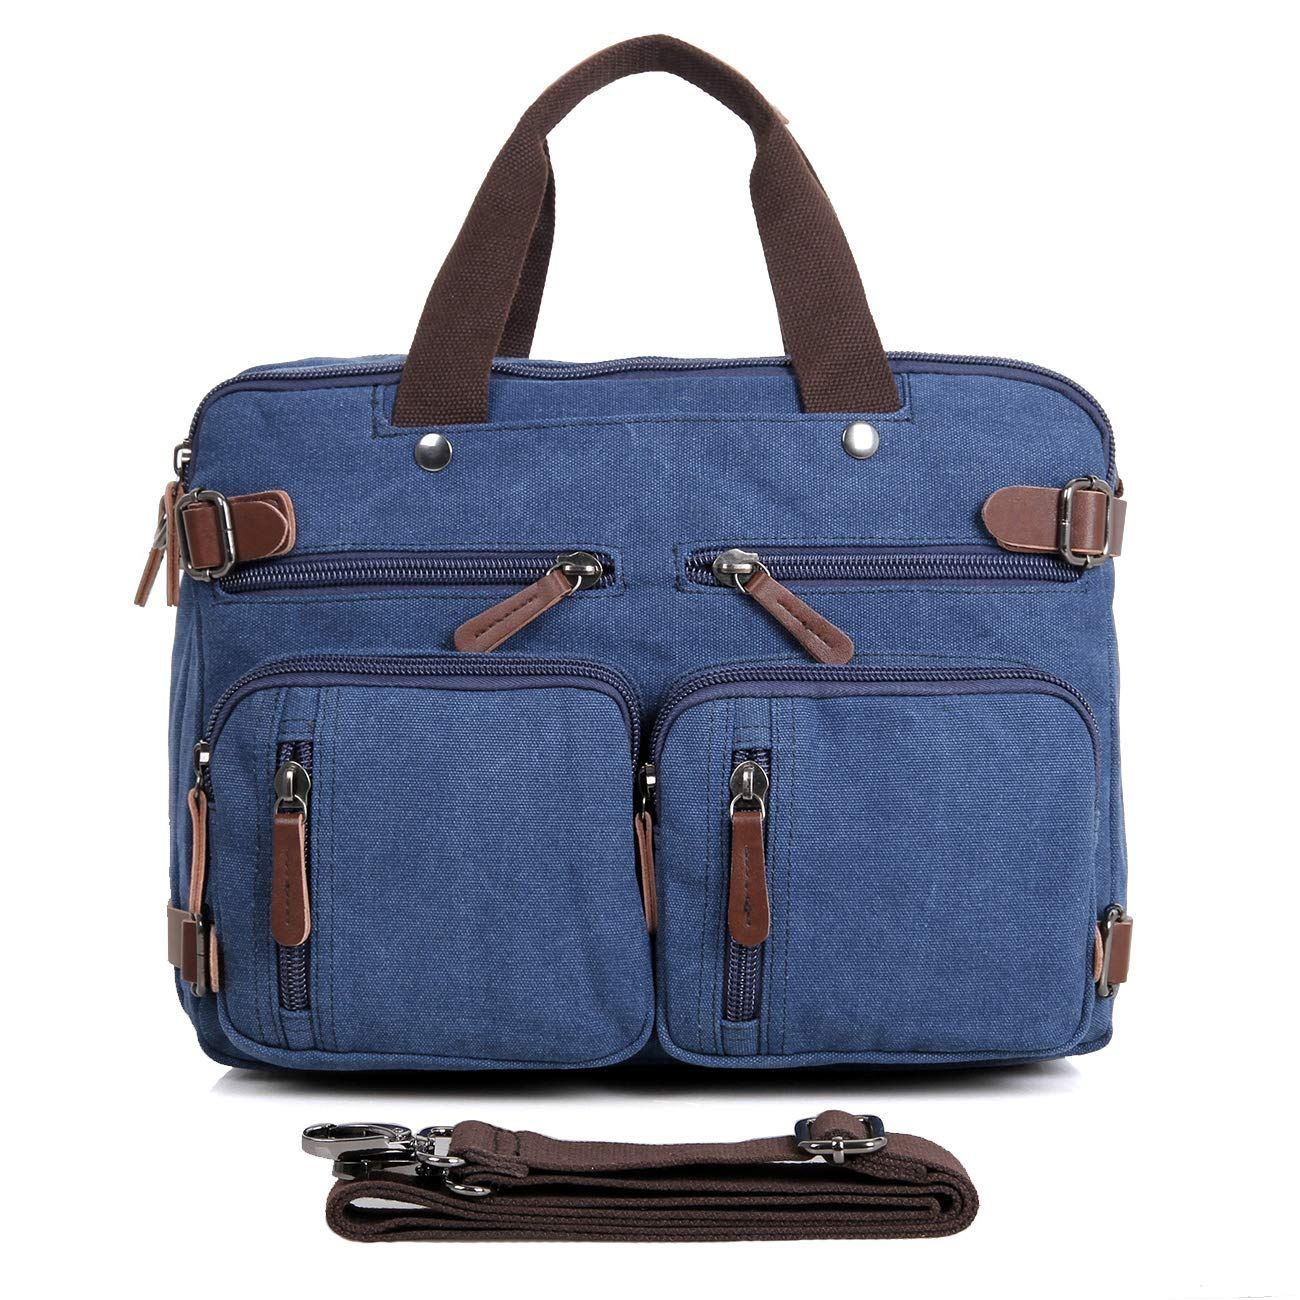 Clean Vintage Laptop Bag Hybrid Backpack Messenger Bag/Convertible Briefcase Backpack Satchel for Men Women- BookBag Rucksack Daypack-Waxed Canvas Leather, Blue